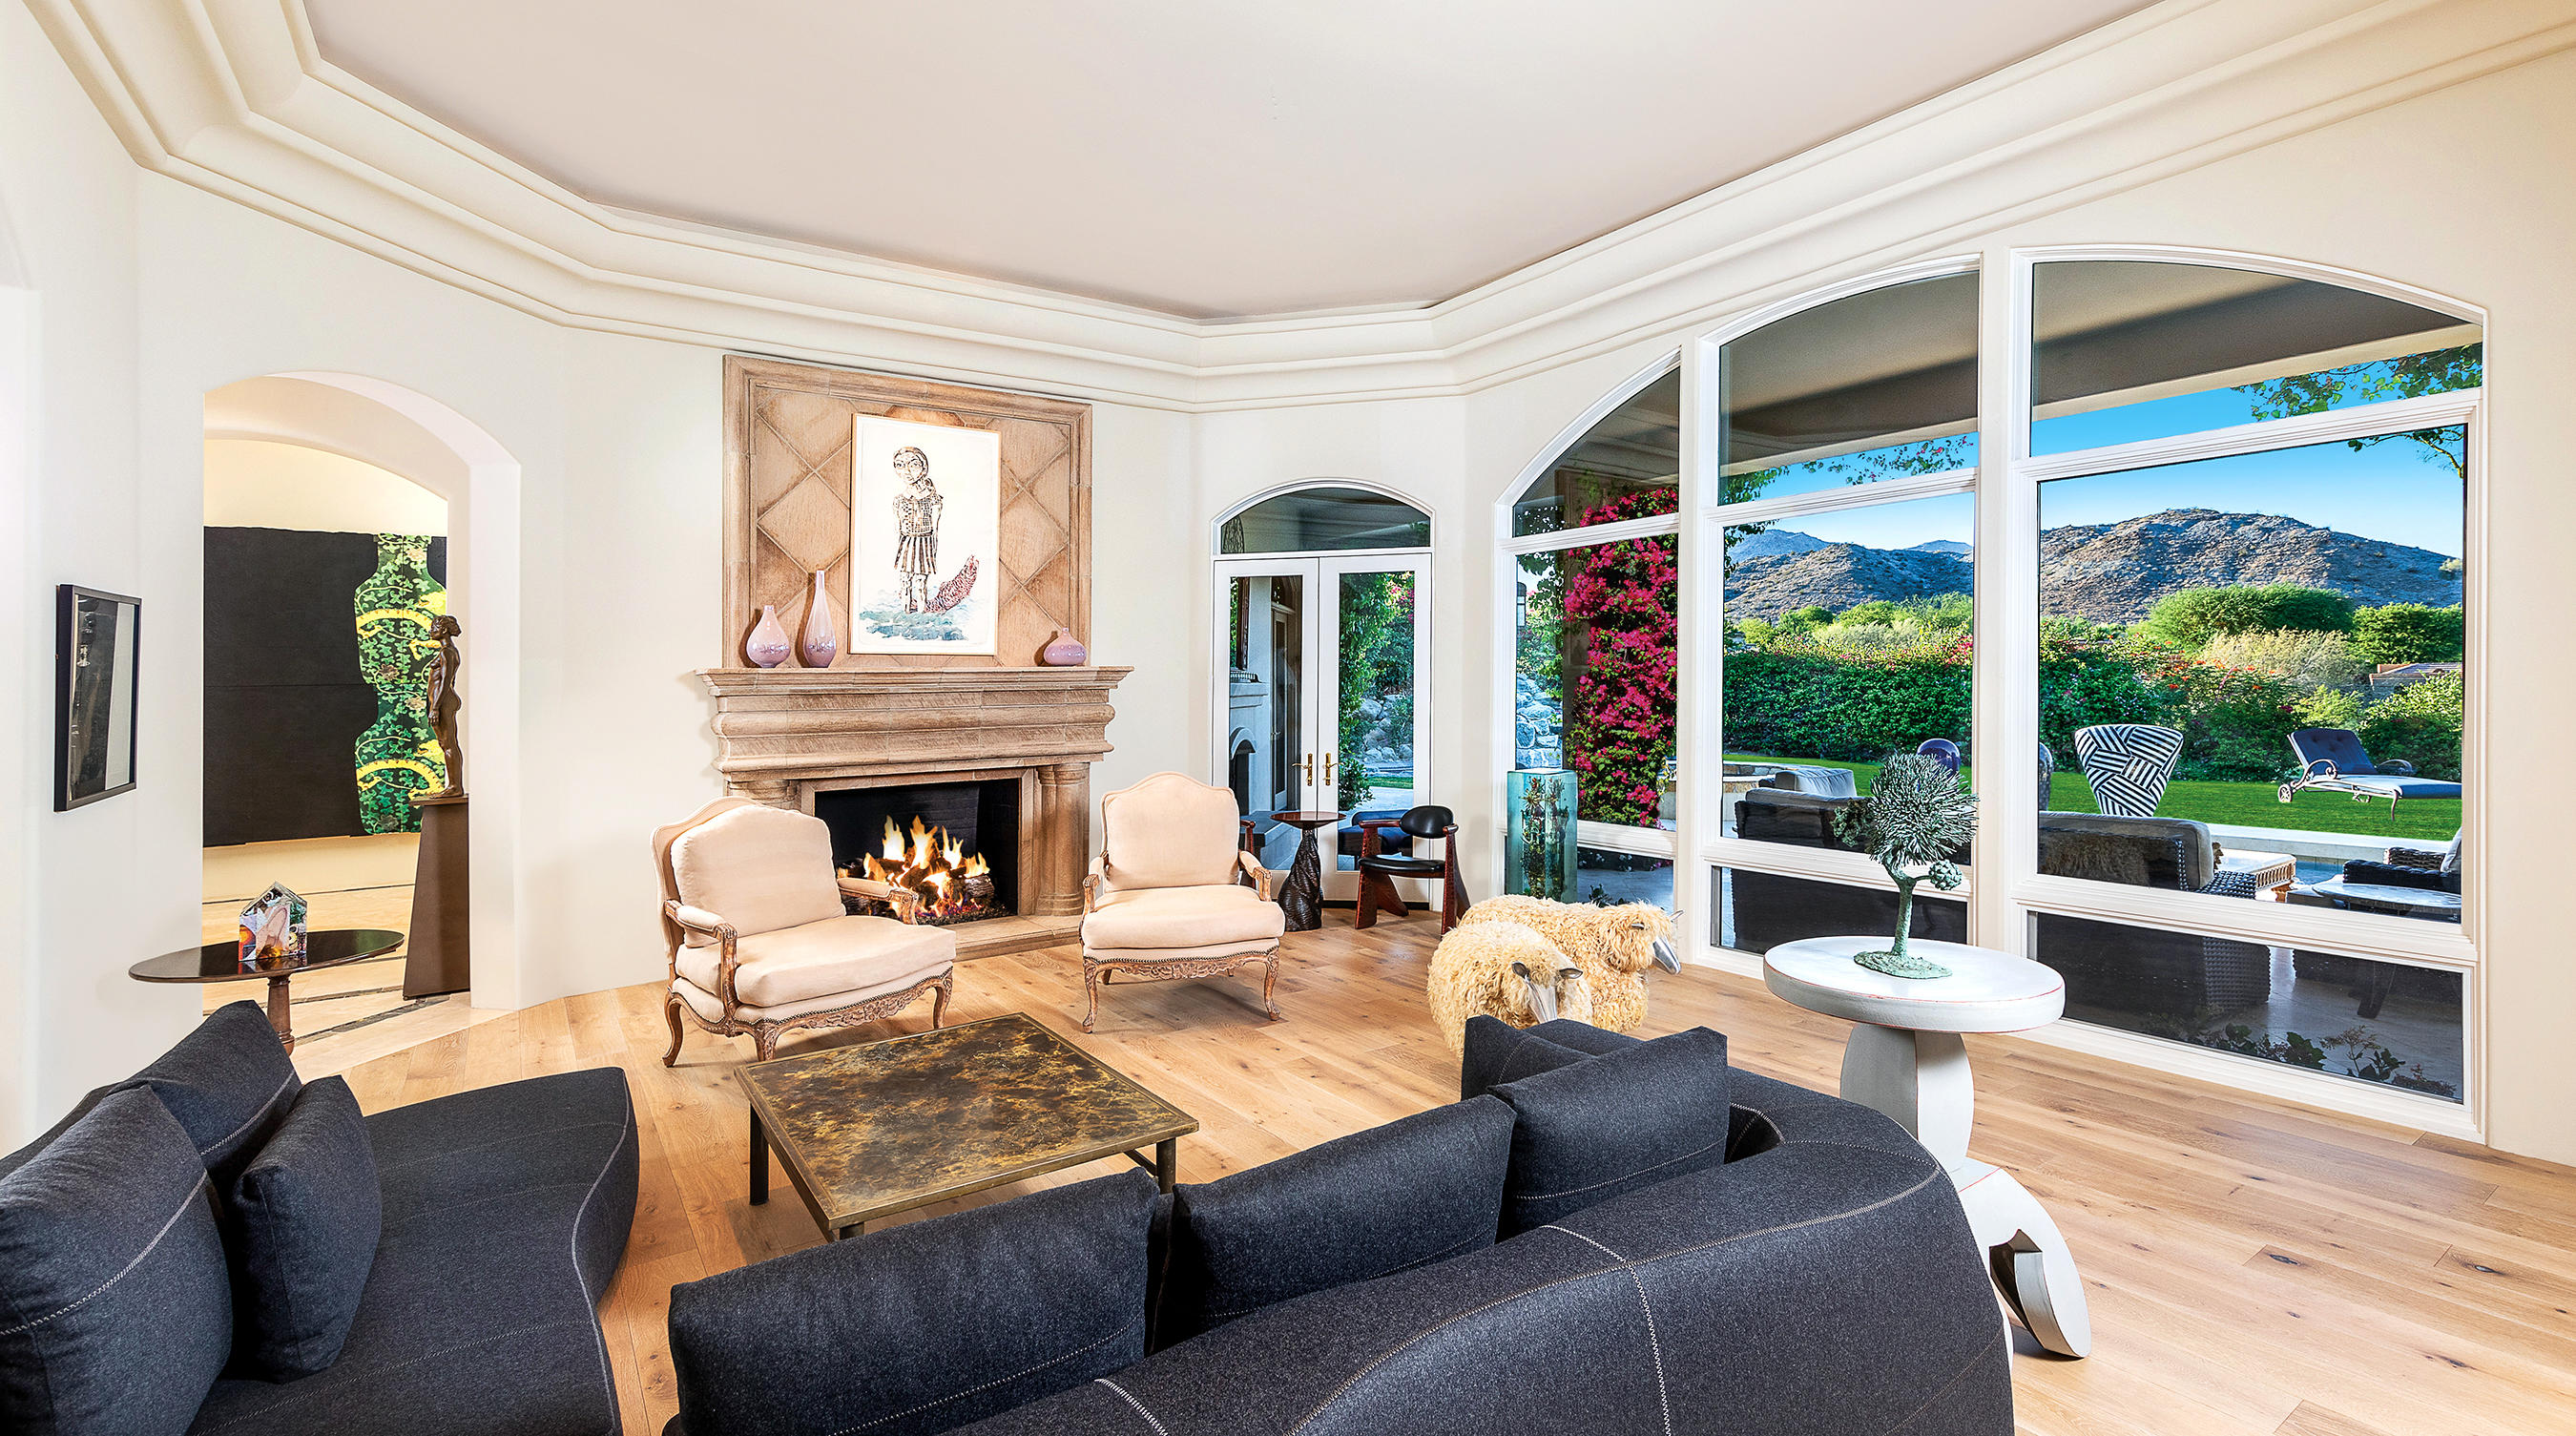 106 Wanish Place, Palm Desert, California 92260, 4 Bedrooms Bedrooms, ,6 BathroomsBathrooms,Residential,For Sale,106 Wanish Place,219041492